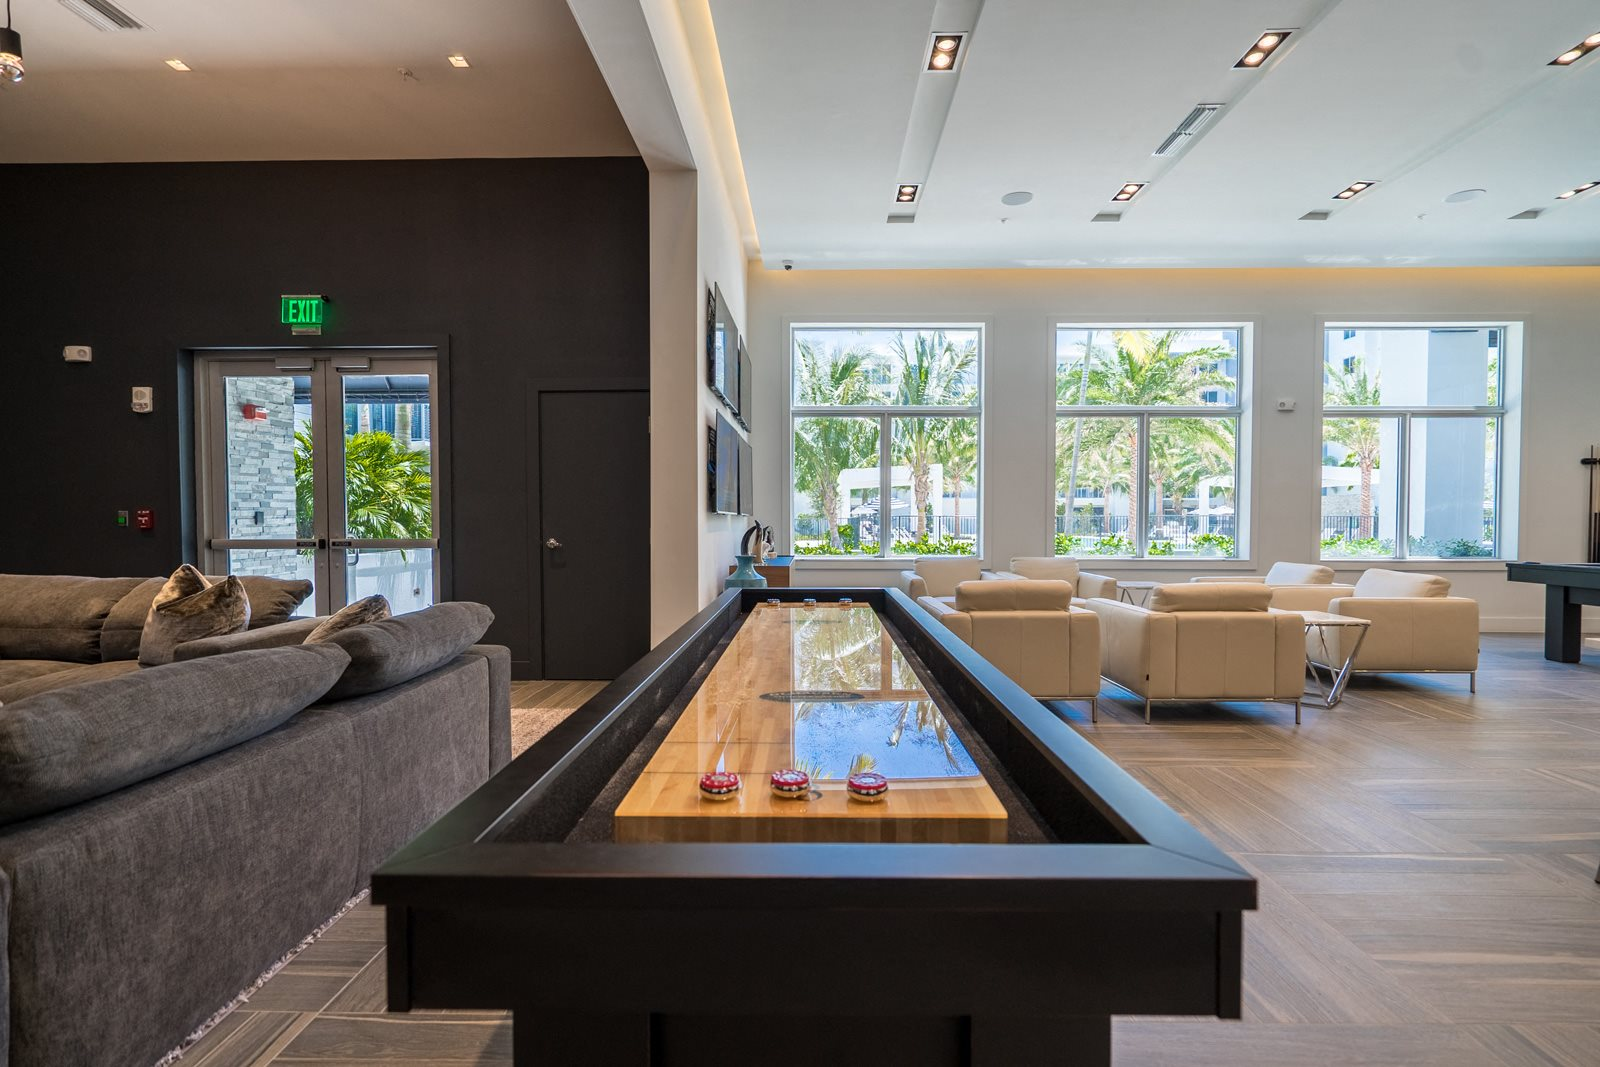 Shuffleboard at Allure by Windsor, 6750 Congress Avenue, Boca Raton